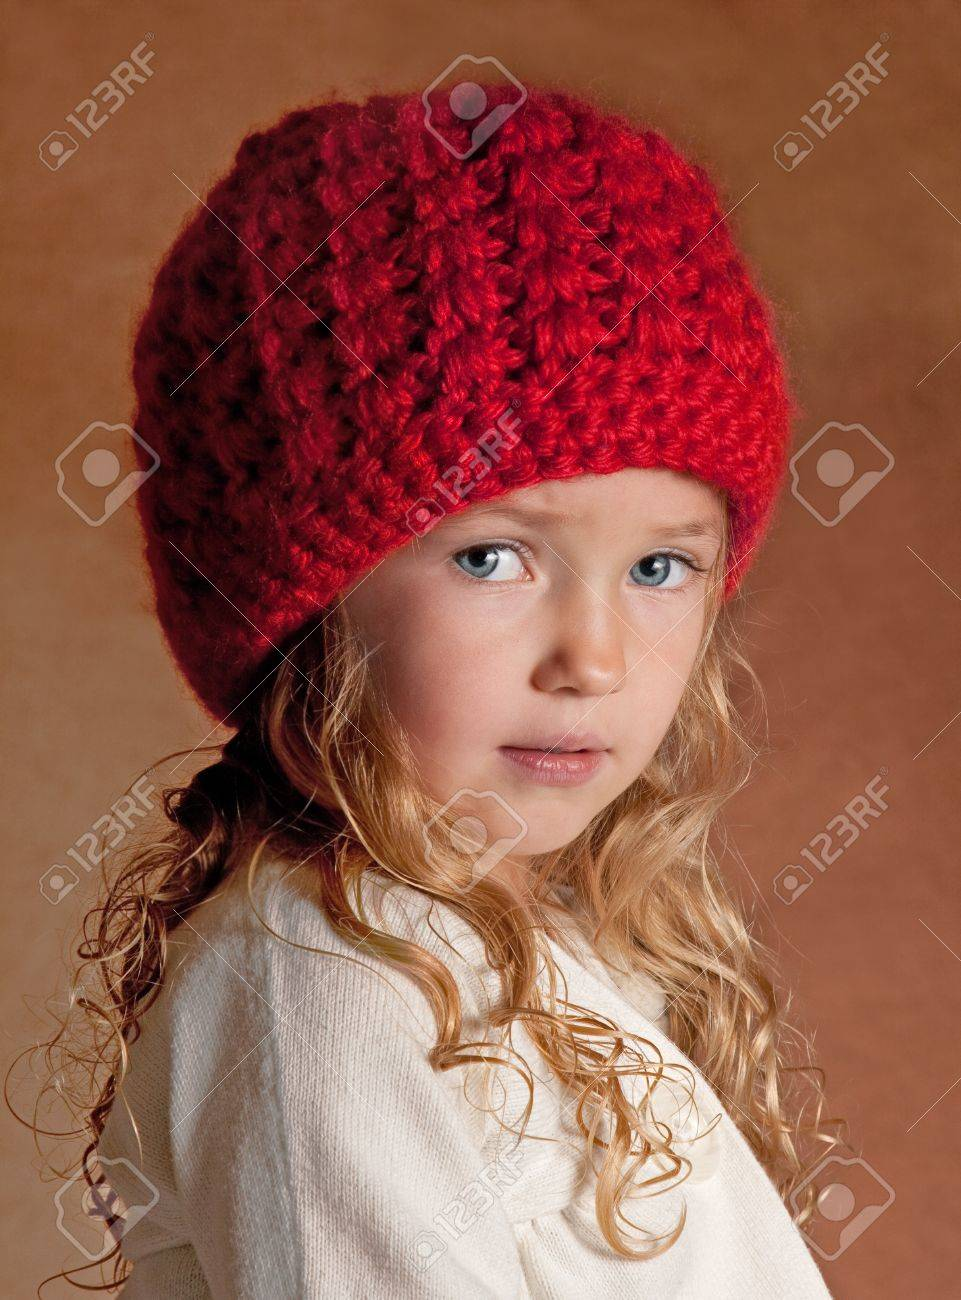 fa5190f8c25 a cute girl wearing a red knit winter hat and a red knit scarf. portrait